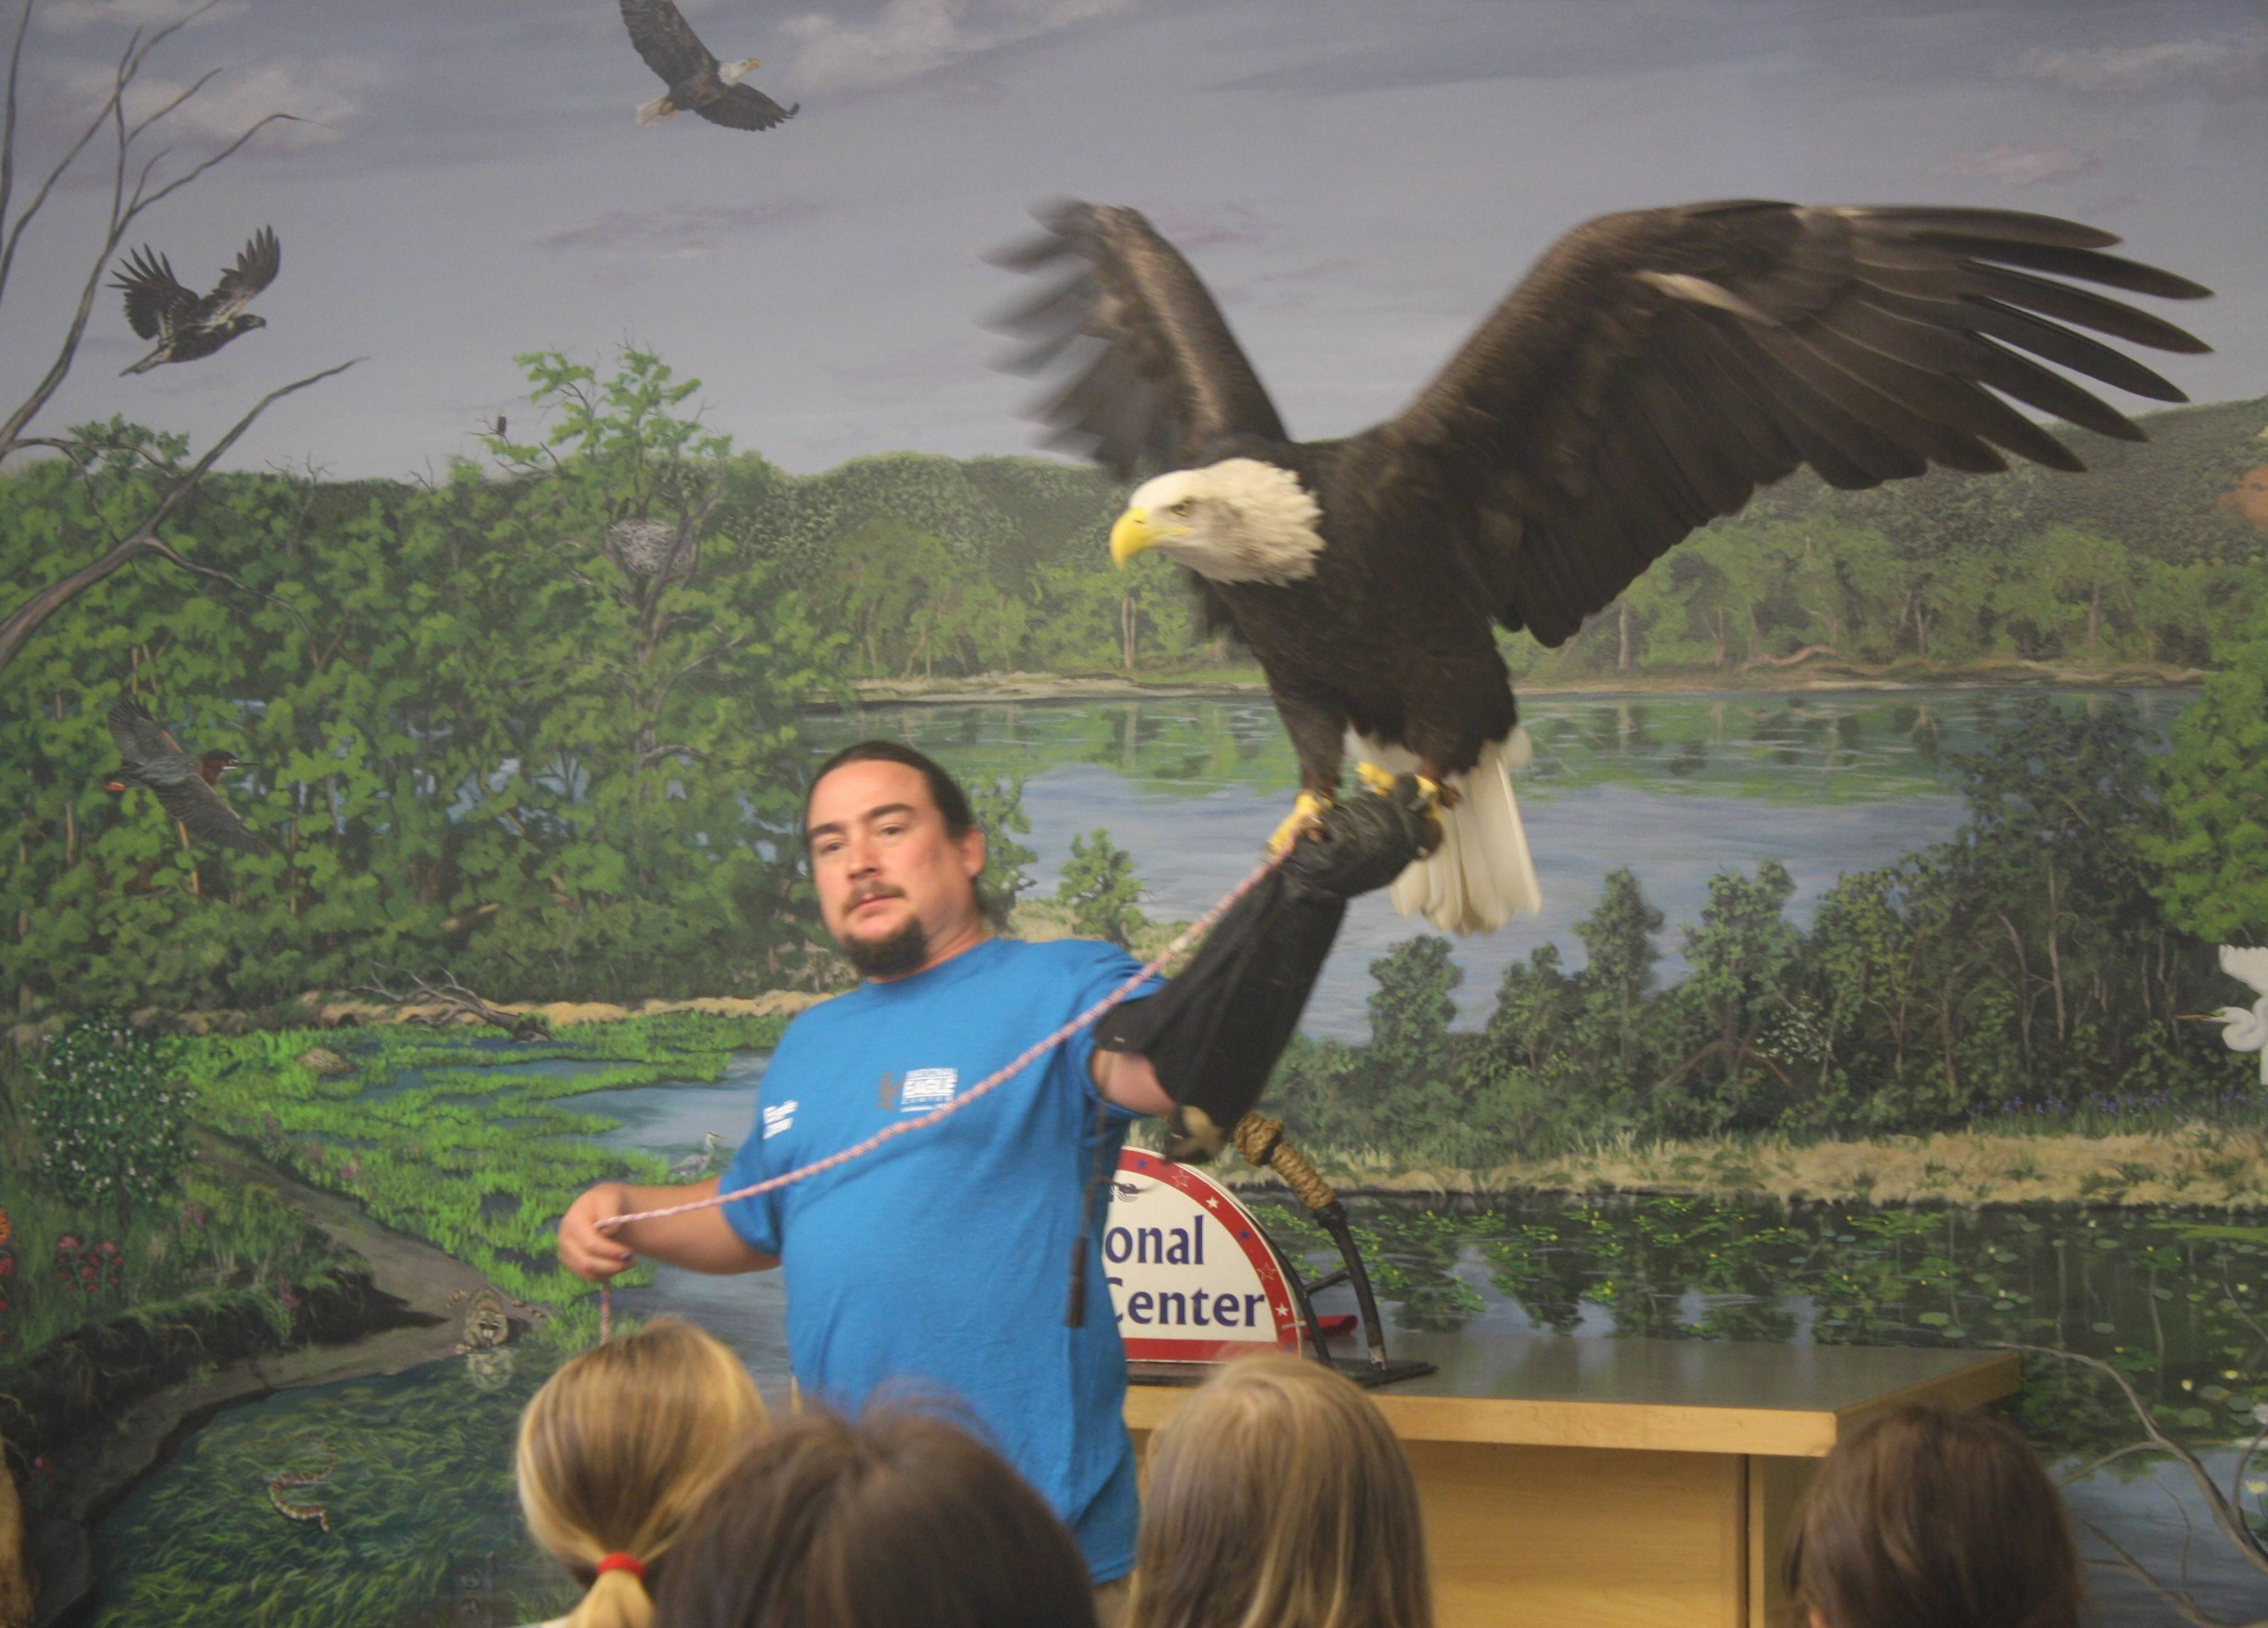 Soar with the Eagles takes place Saturday and Sunday, March 22-23, at the National Eagle Center in Minnesota.